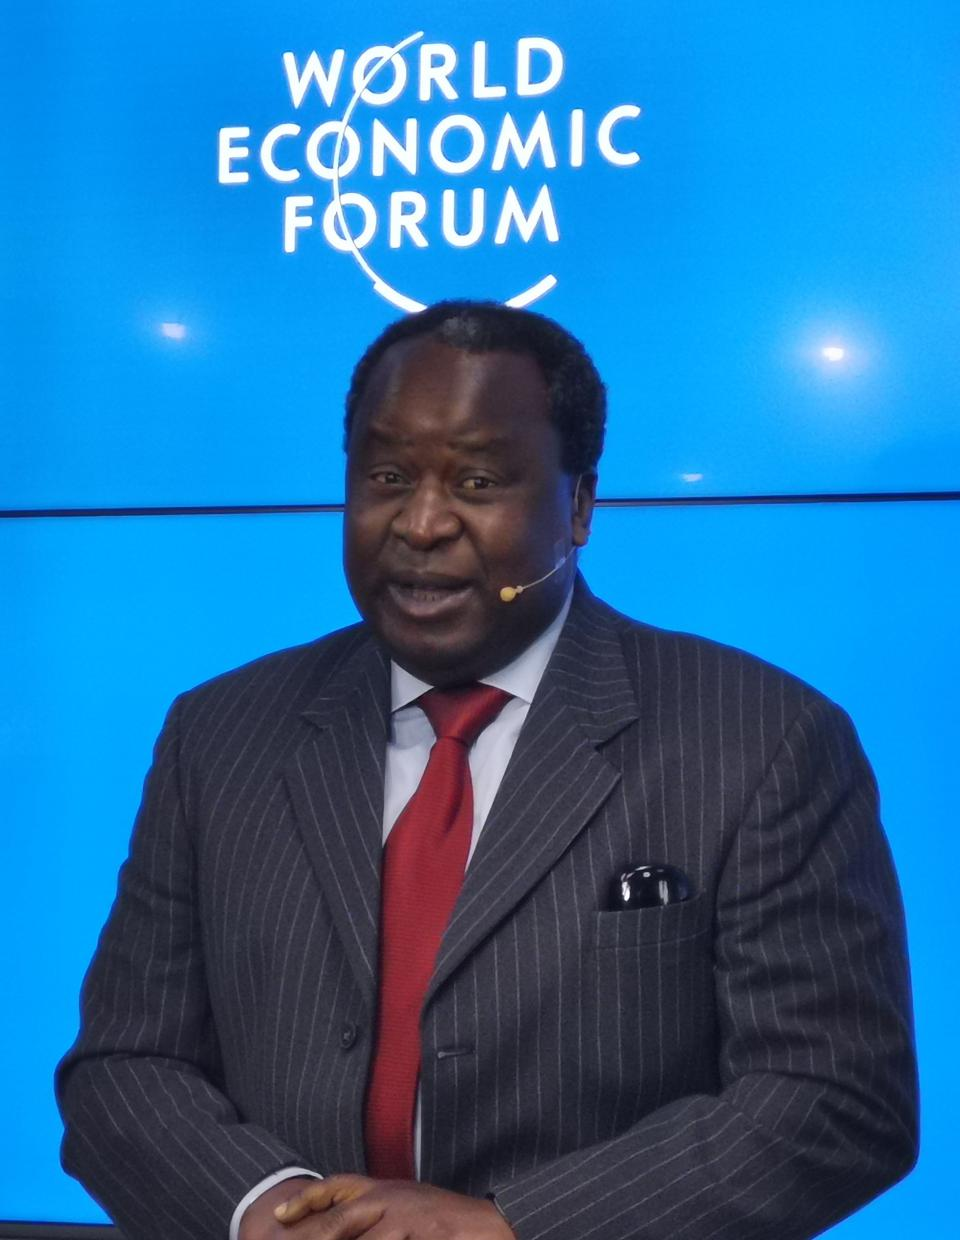 South African finance minister Tito Mboweni